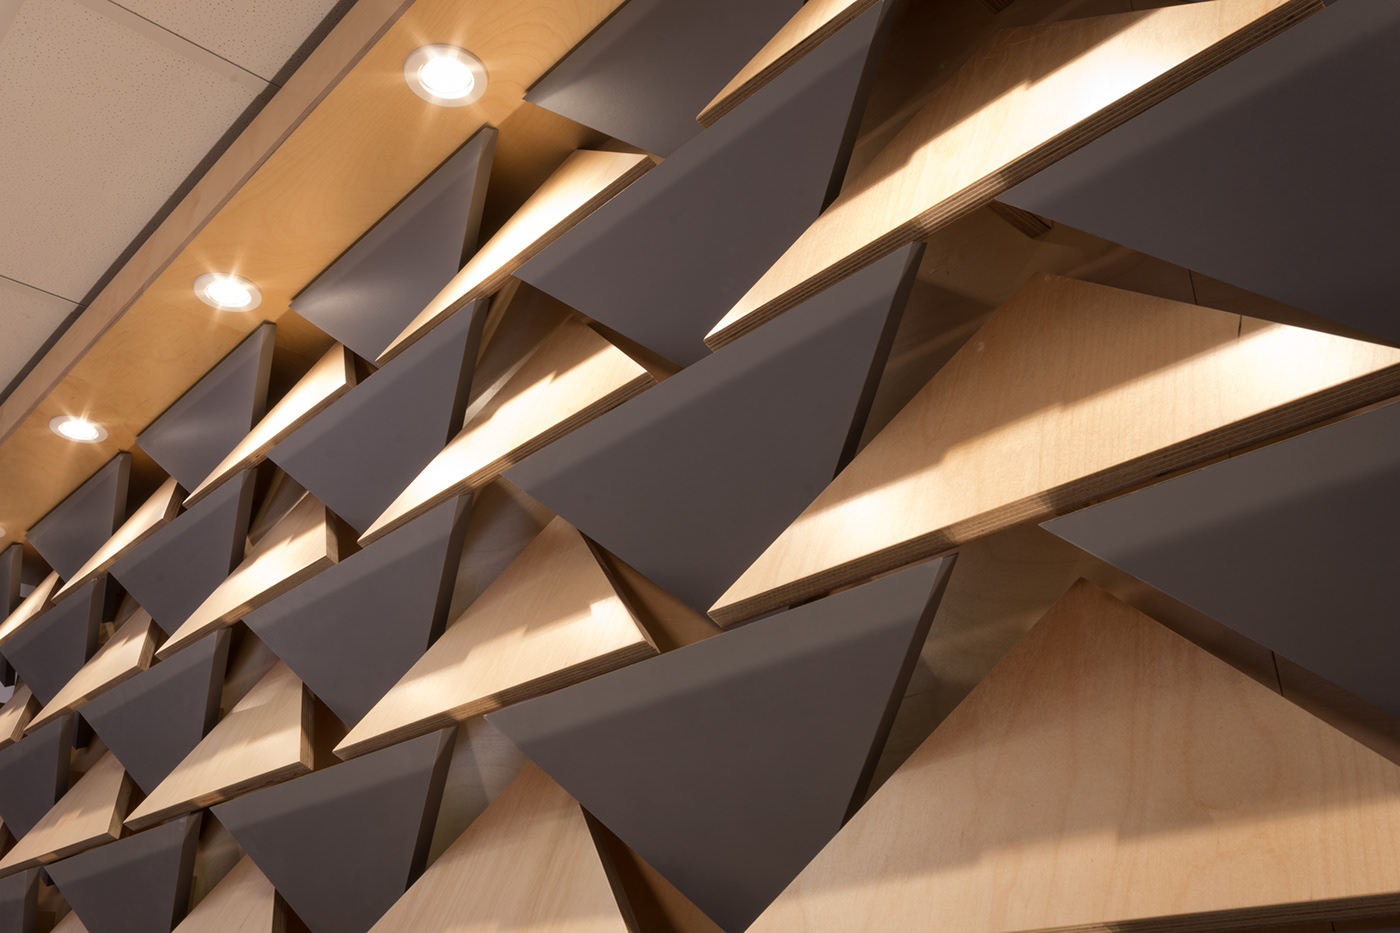 interior design  Acoustic panels plywood raw materials natural Polygons Triangles studio